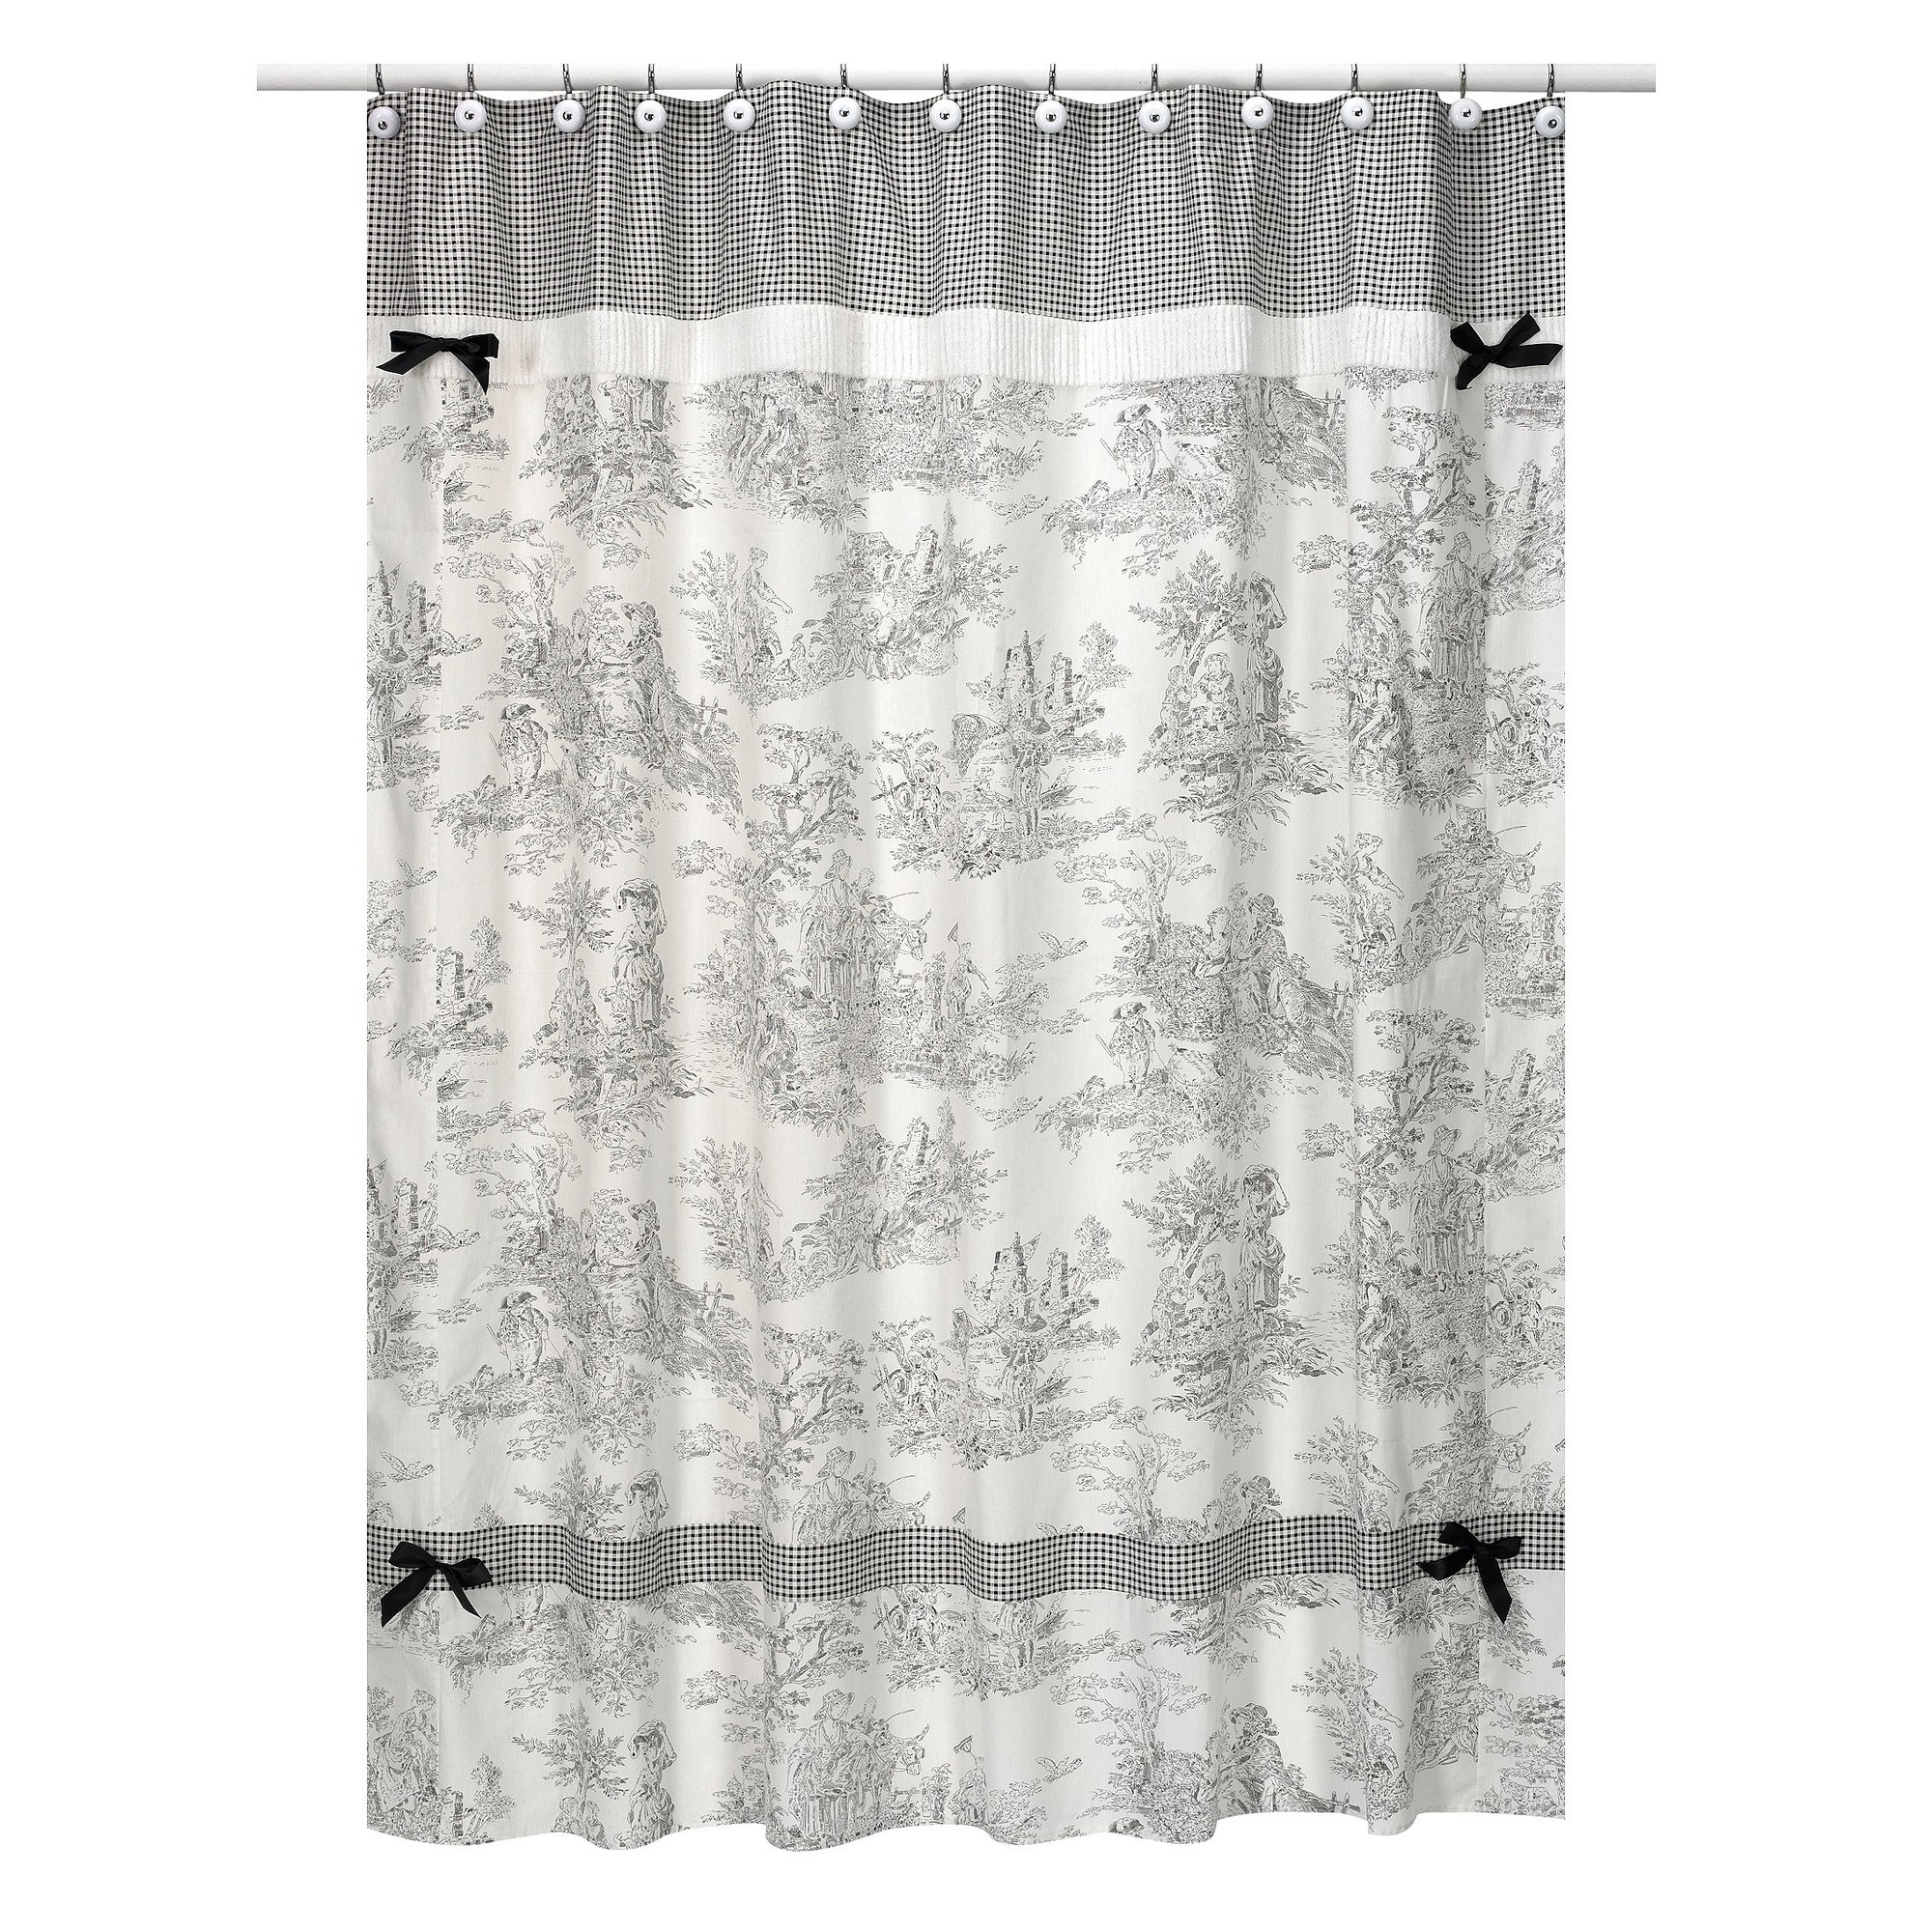 Charmant Country Fabric Shower Curtains 23